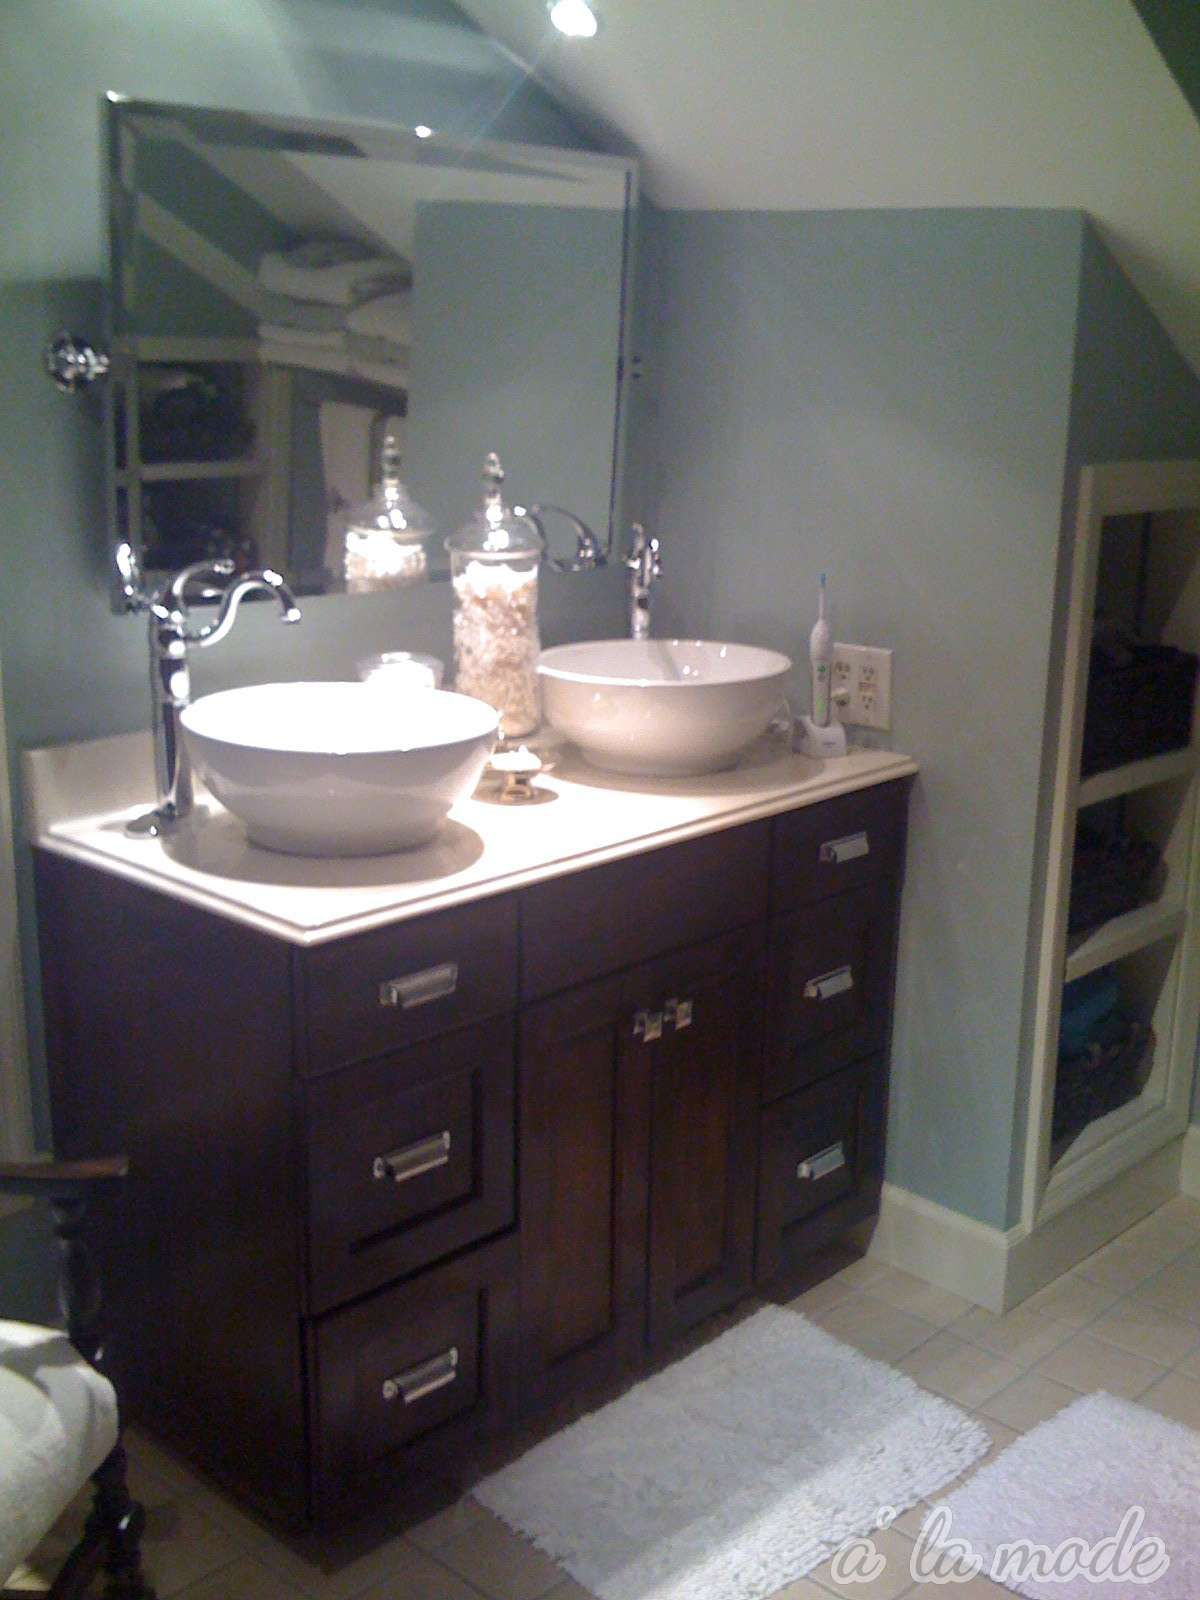 Glass Bathroom Vanity Tops favored white like porcelain glass vanity top with 2 bowl sink and